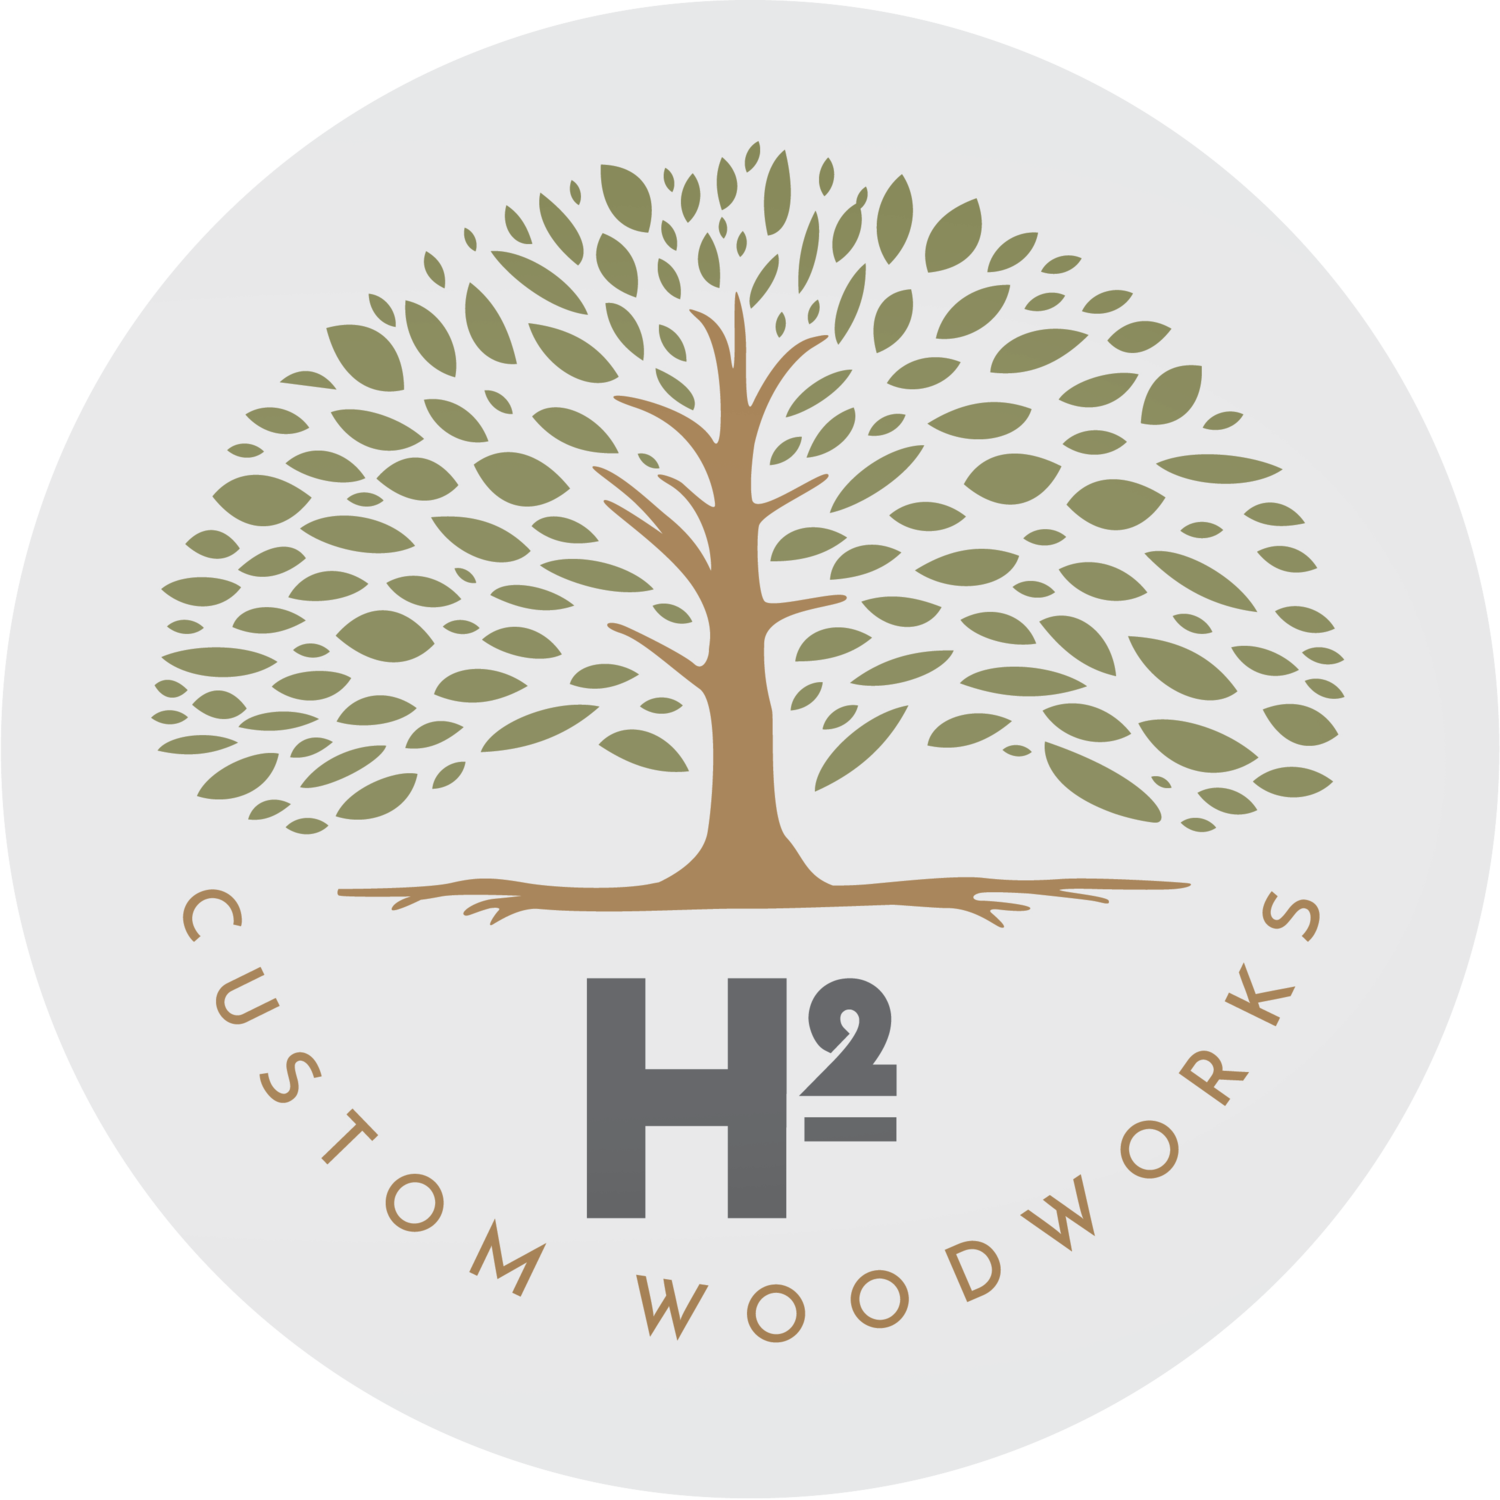 H² Custom Woodworks